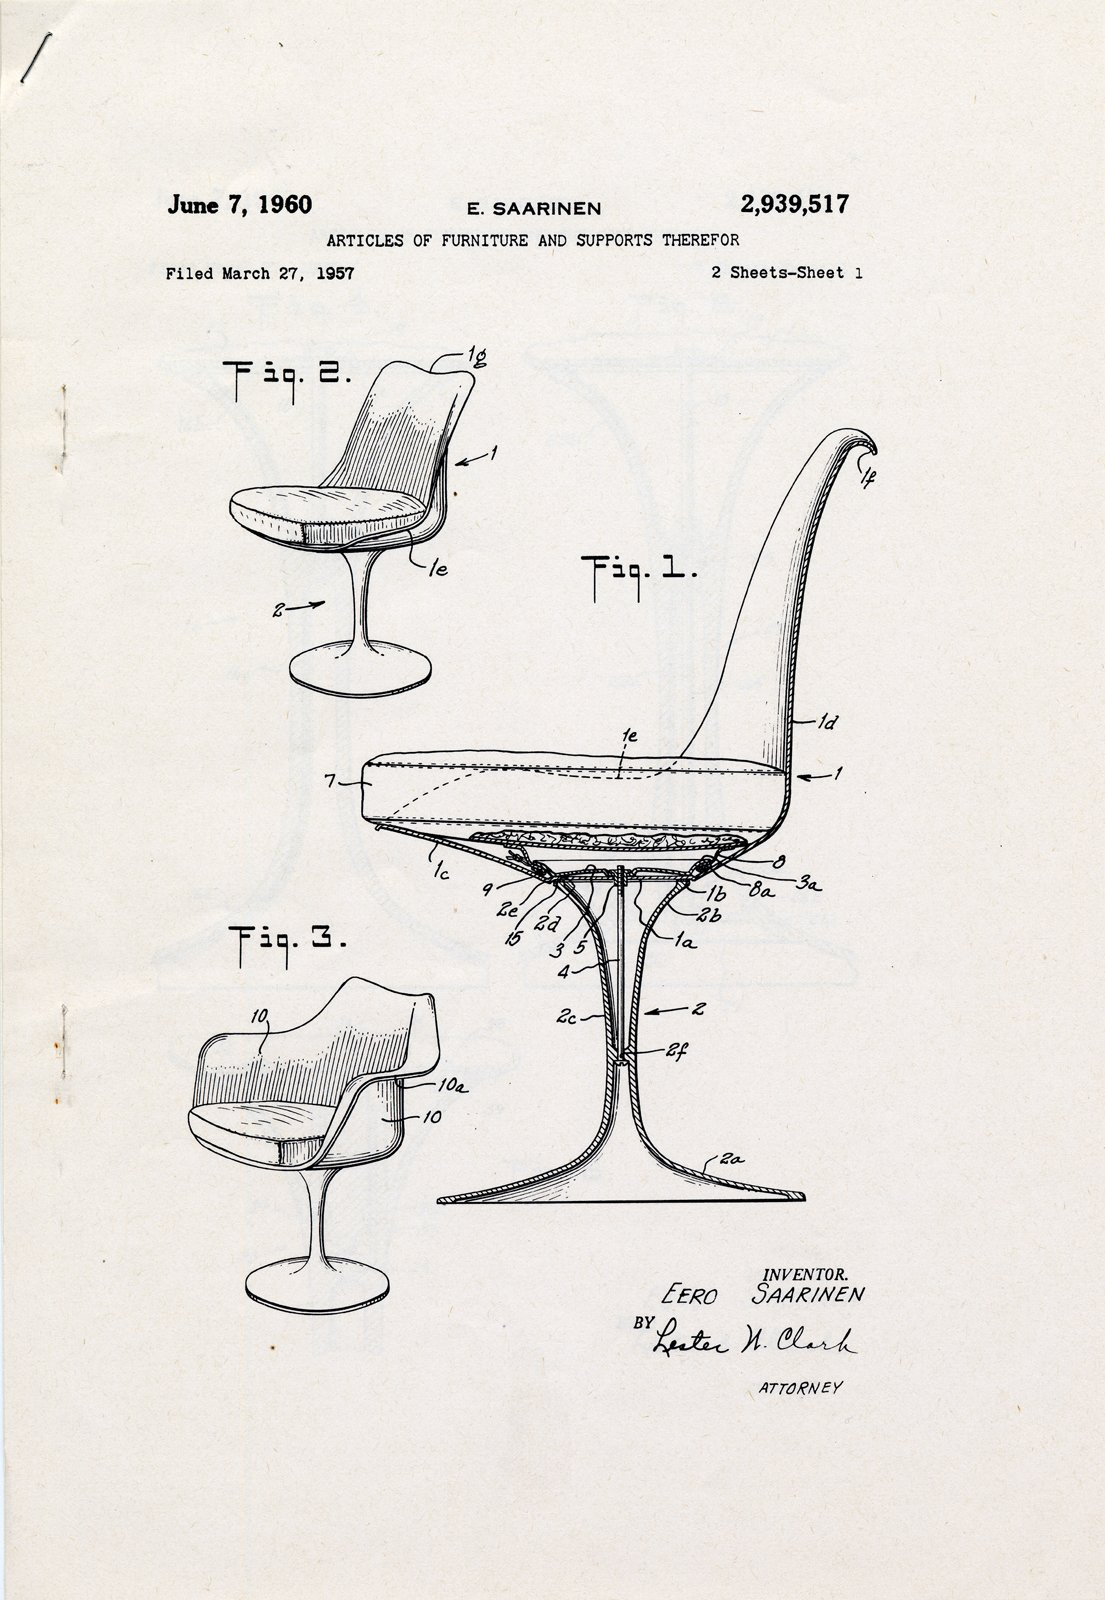 Patent drawing for pedestal chairs (1960) by Eero Saarinen, on display at the Museum of the City of New York through January 31, 2010. Image courtesy of the Eero Saarinen Collection at Yale University and the Finnish Cultural Institute in New York.  Photo 3 of 15 in Events this Weekend: 1.28-1.31